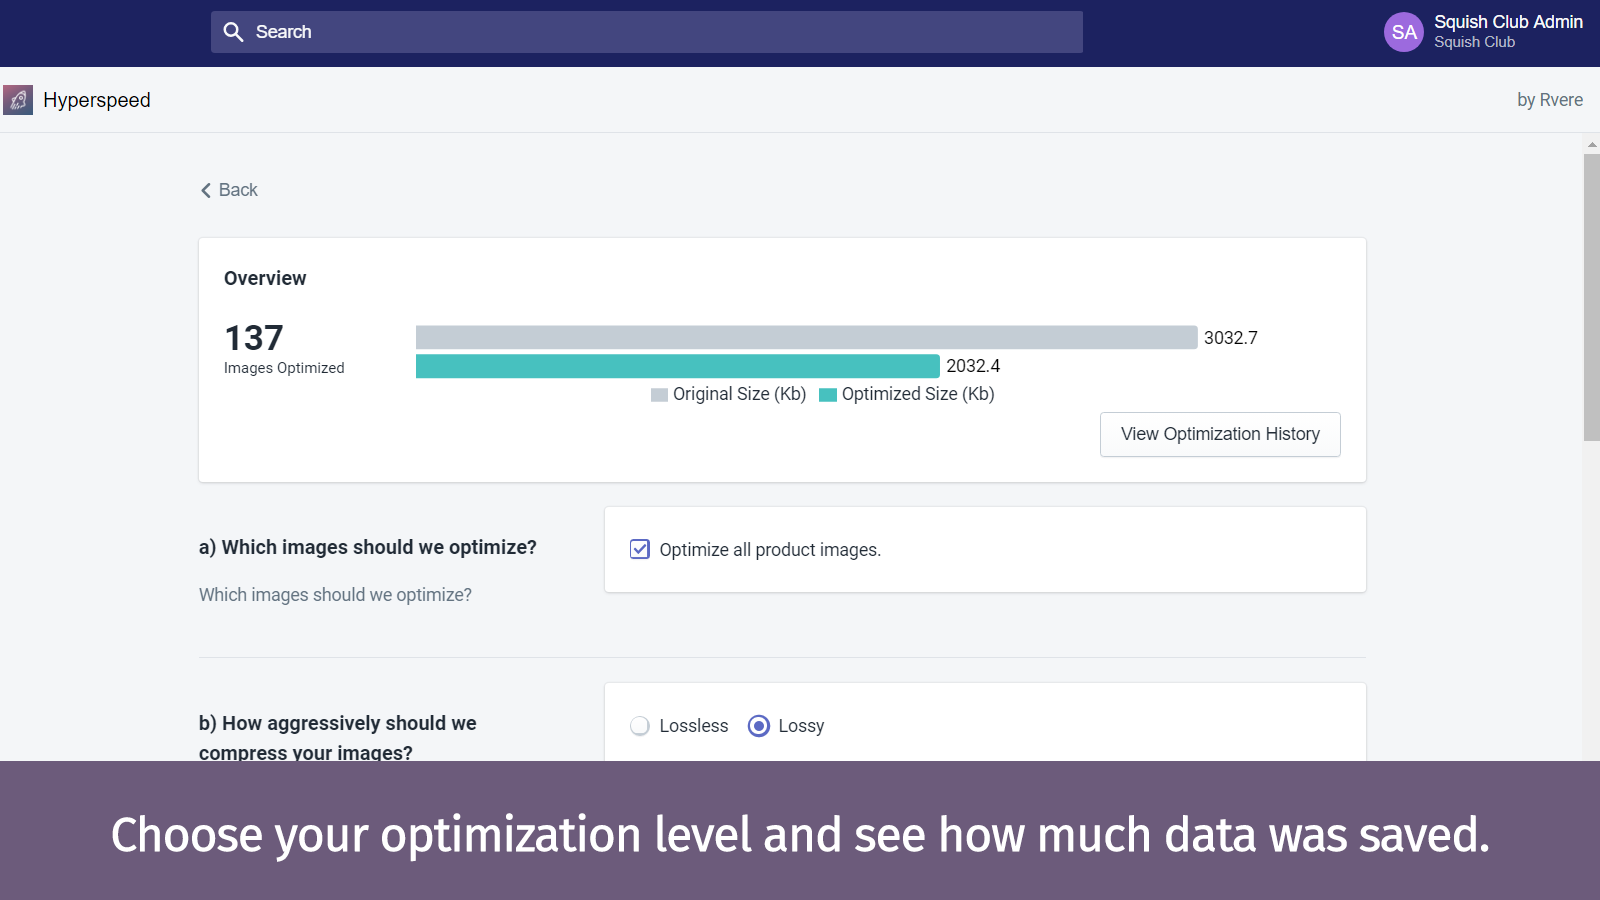 Choose your optimization level and see how much data was saved.